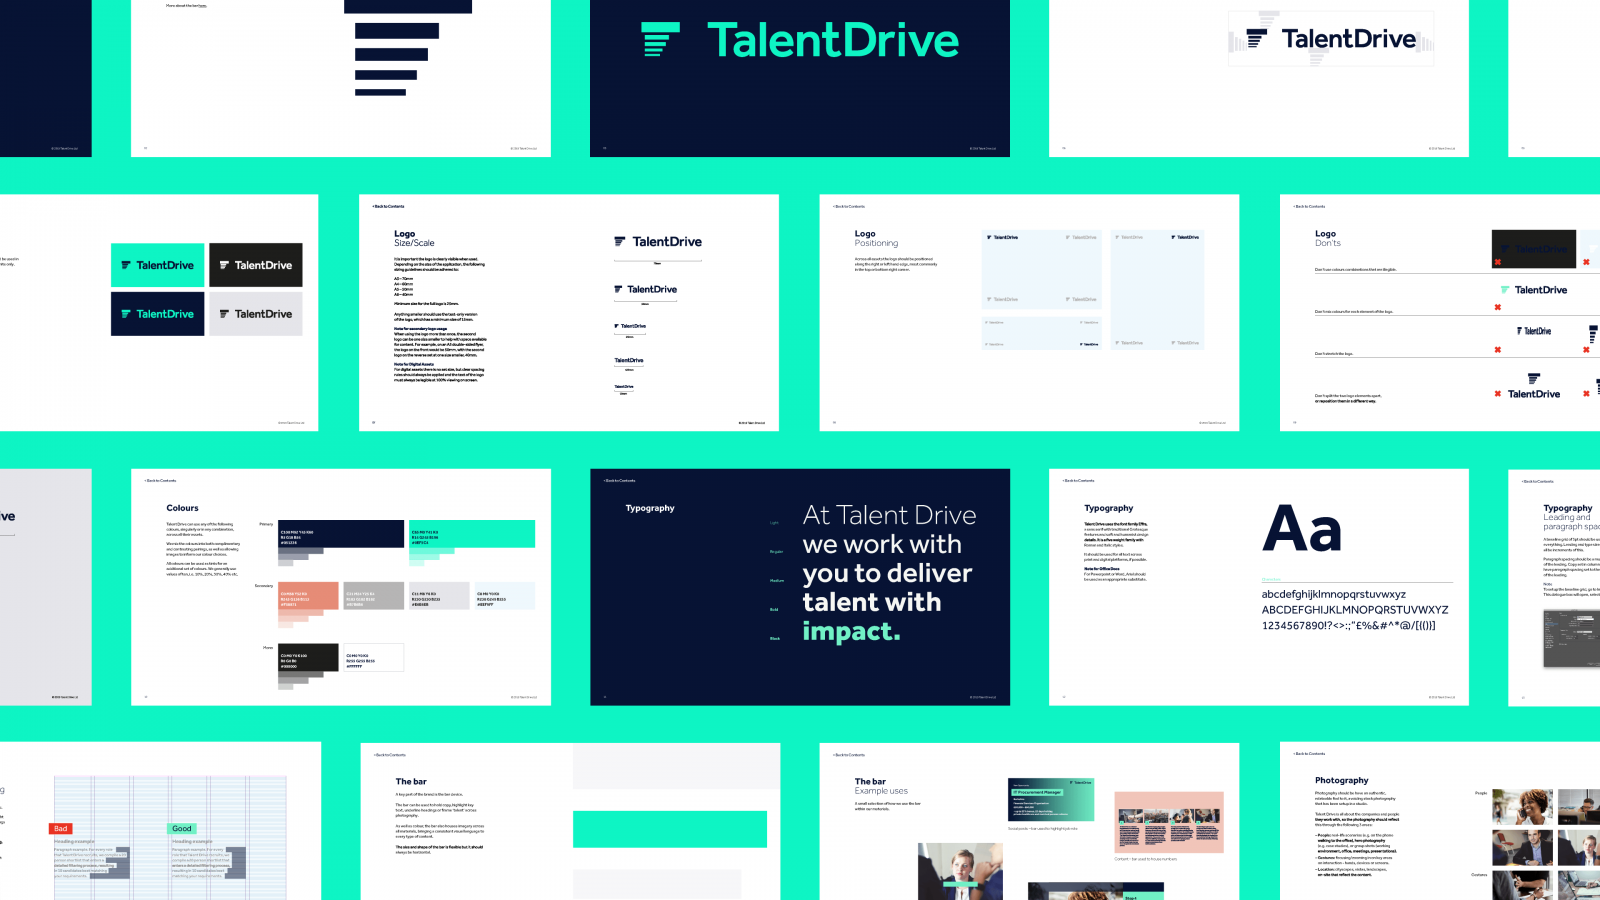 Talent Drive brand guidelines